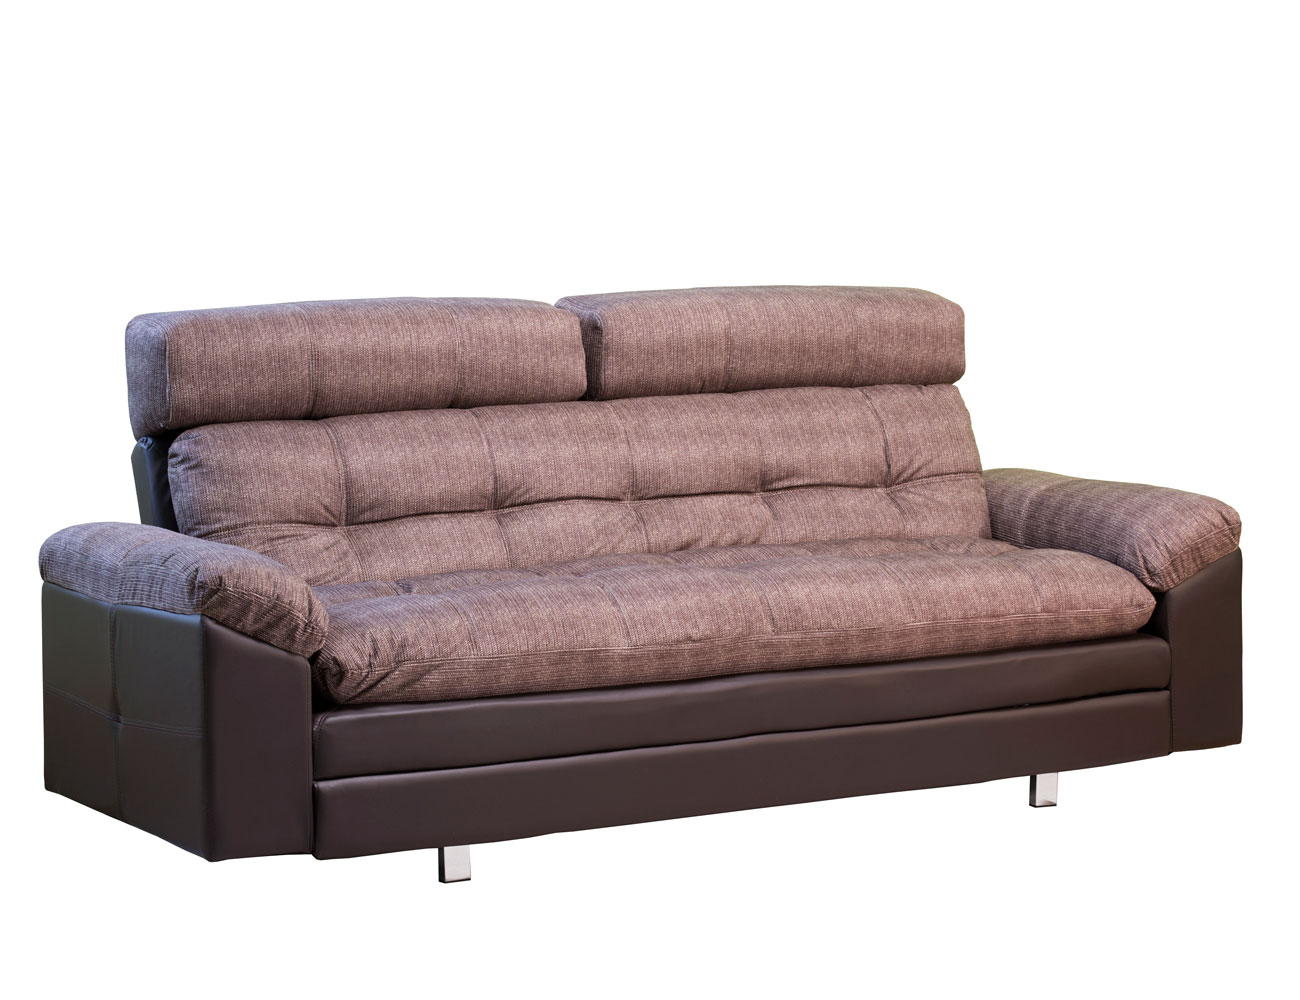 Sofa cama chaiselongue elegance choco rustika